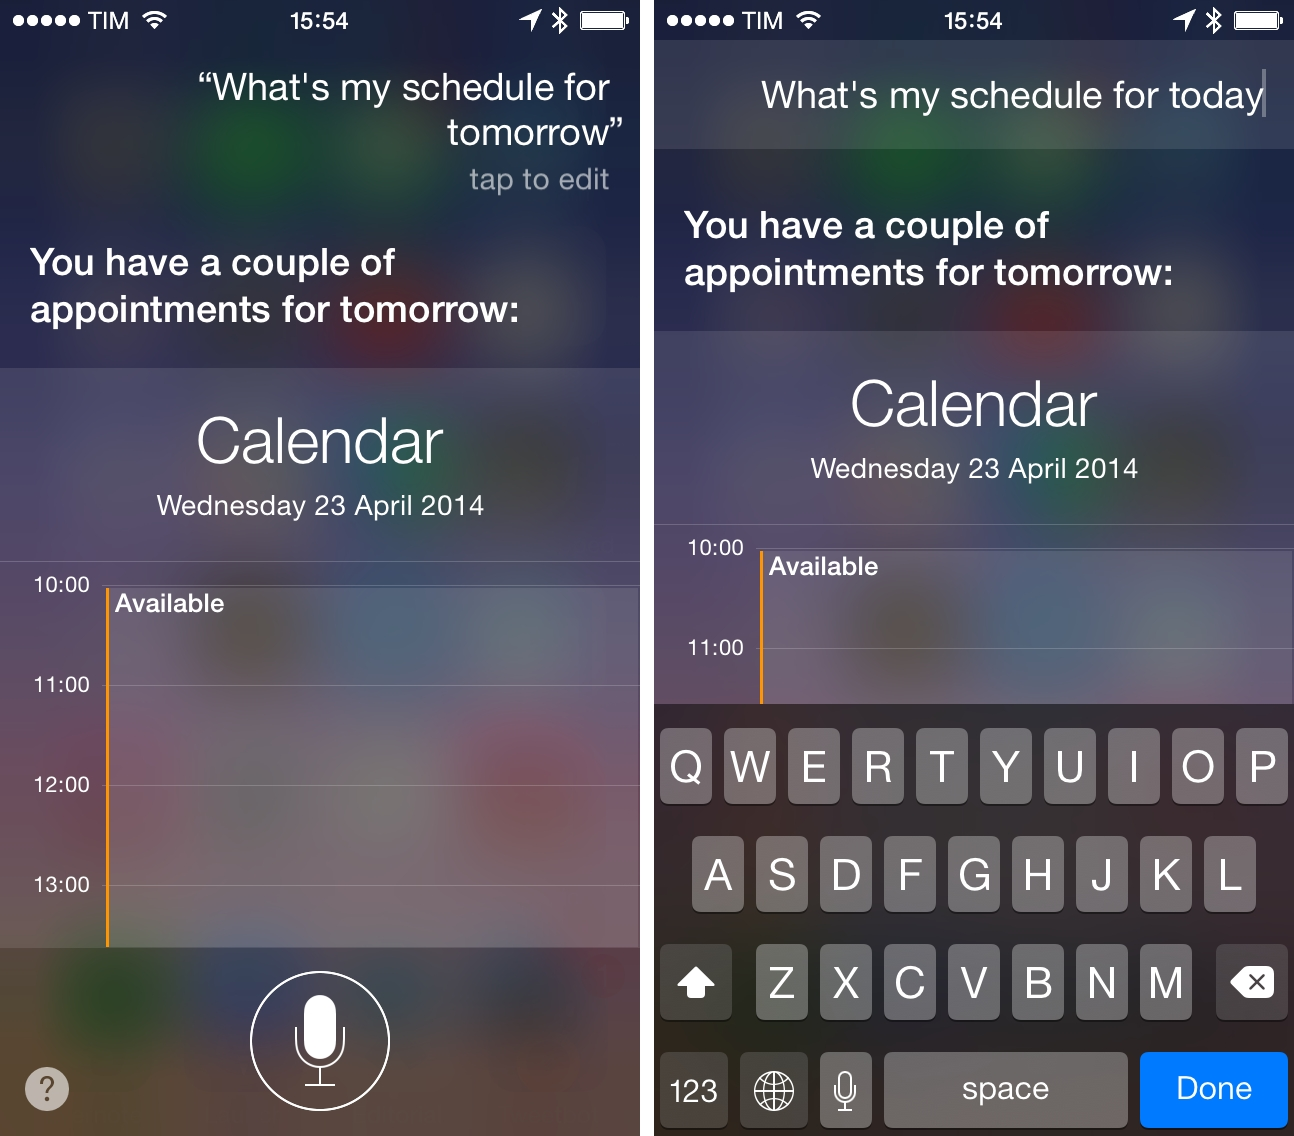 Siri offers a text editing mode, but it's limited to fixing previously spoken commands.